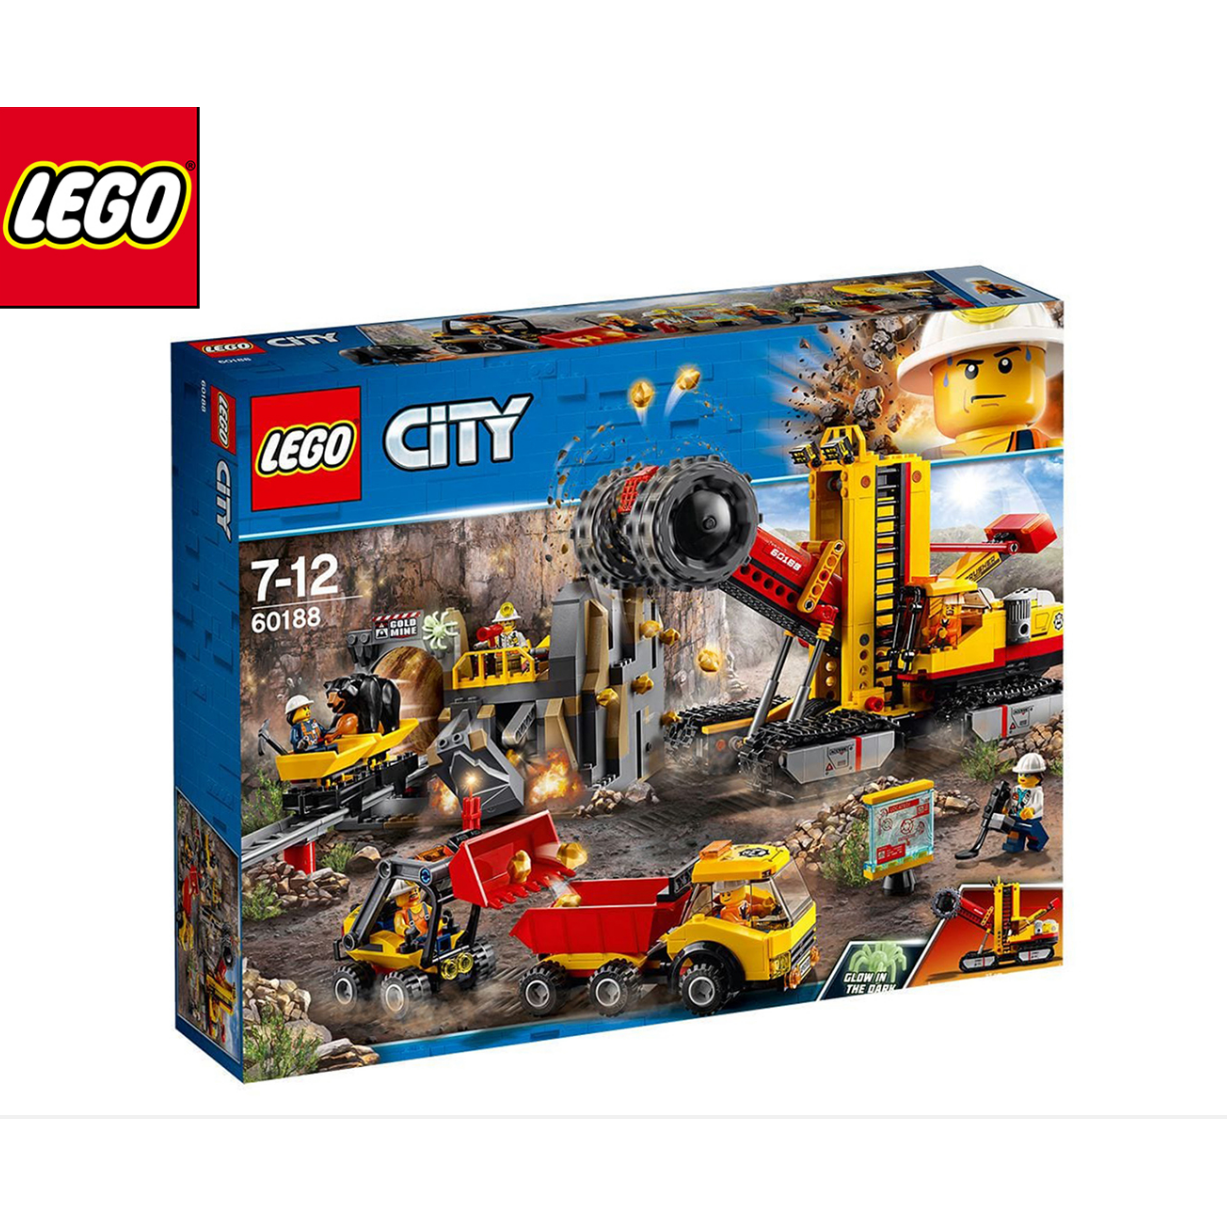 LEGO City Mining Experts Site Building Set 60188